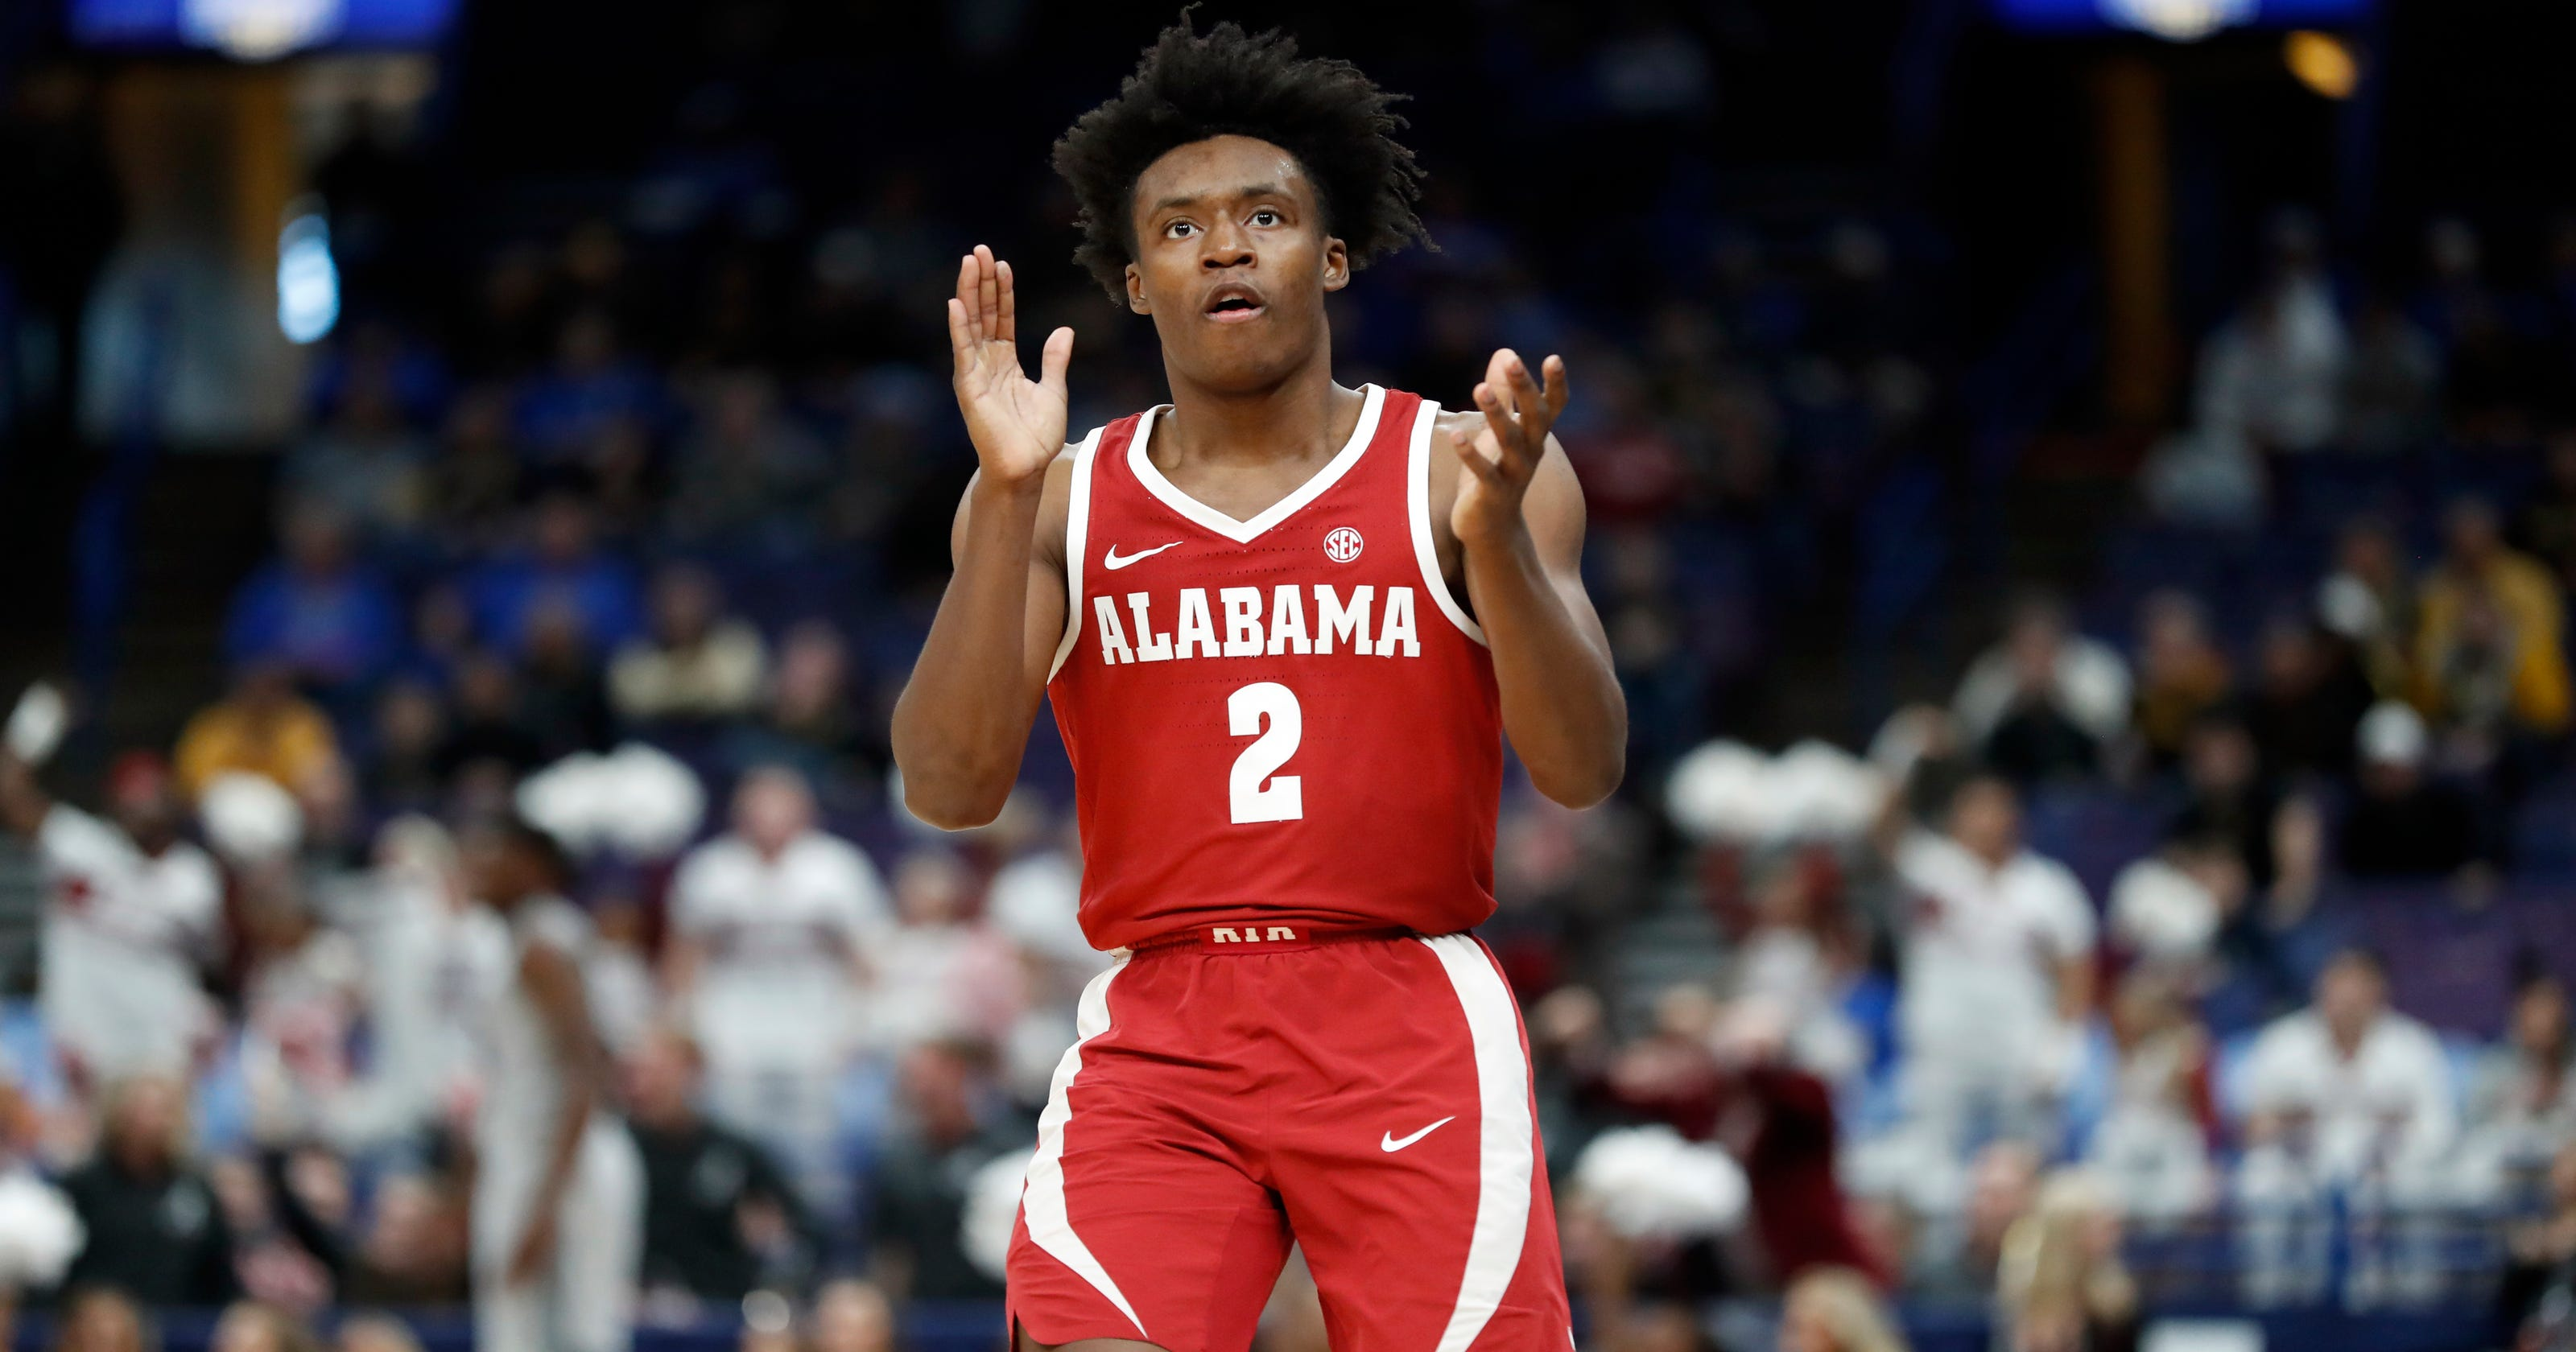 The joy of Sexton  Alabama guard guides Tide to blowout over Auburn in SEC  Tournament d5c3898d2